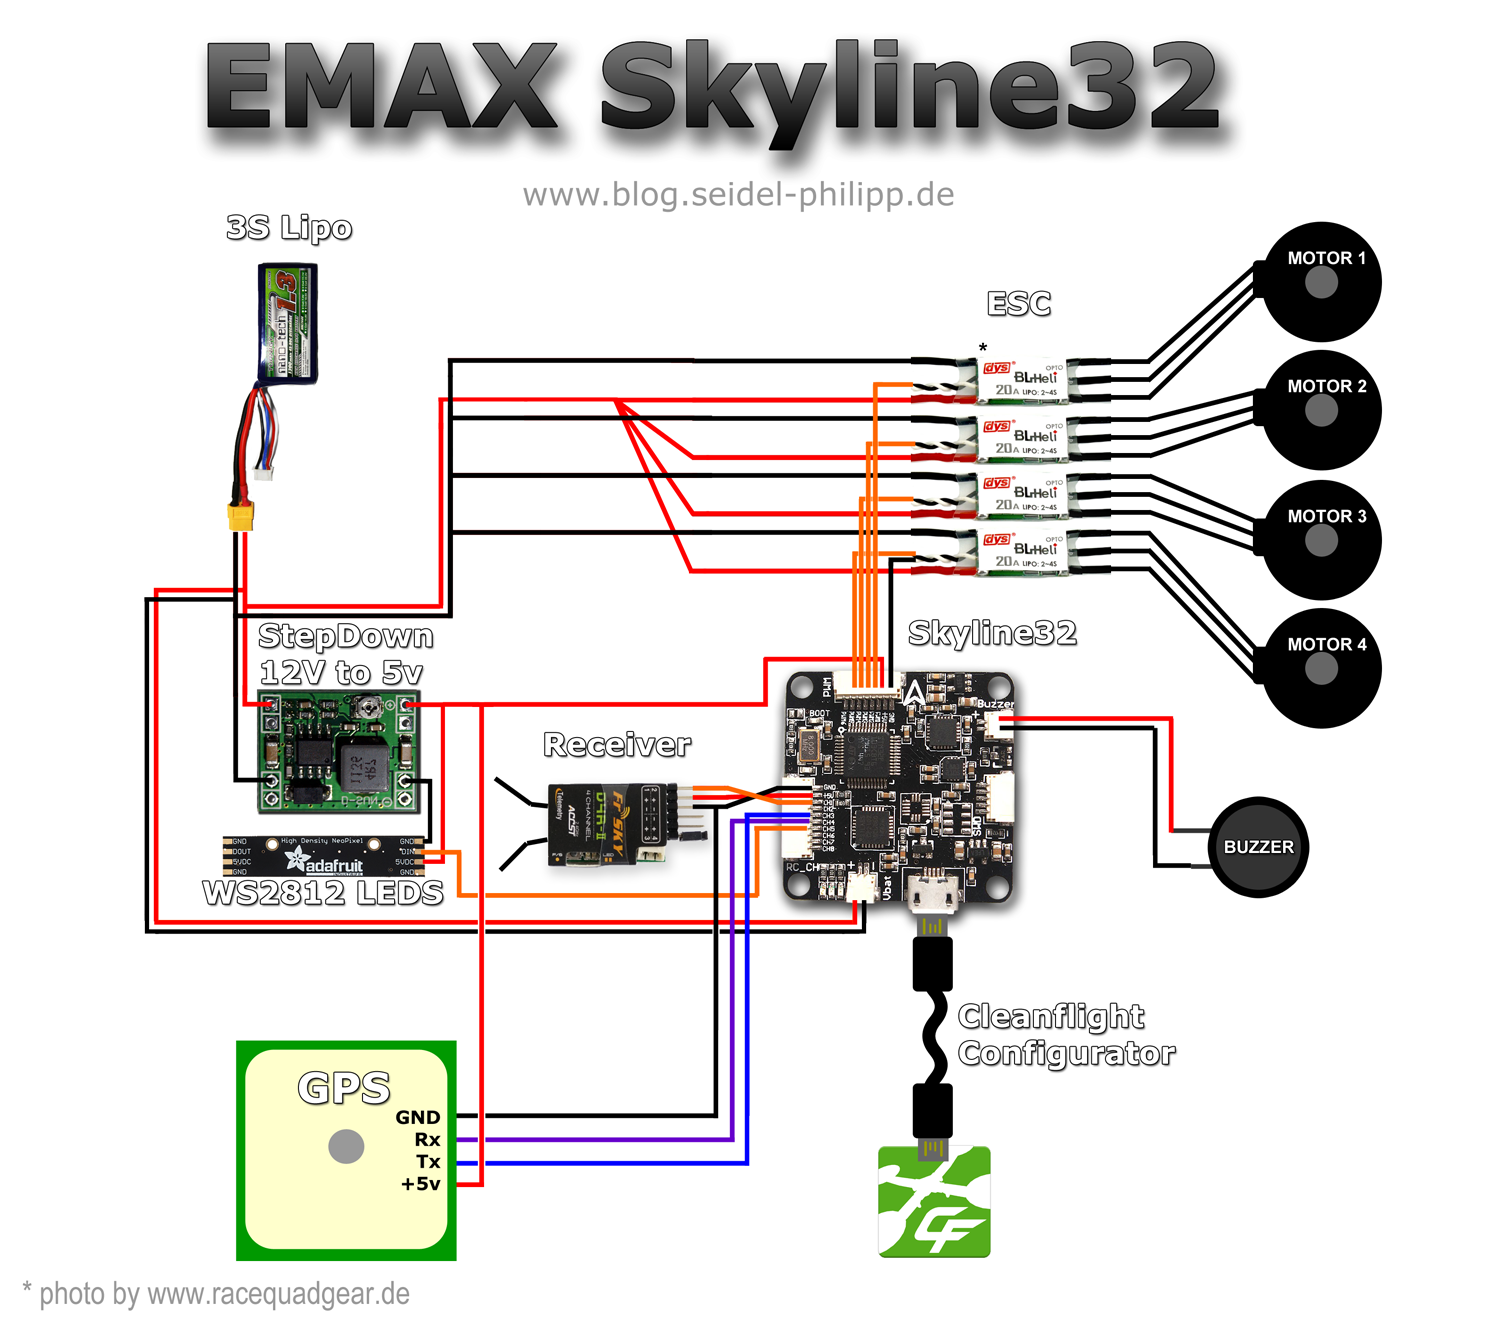 drone and fpv wiring diagram skyline32 naze32 setup wiring guide to motors and esc skyline32 naze32 setup wiring guide to motors